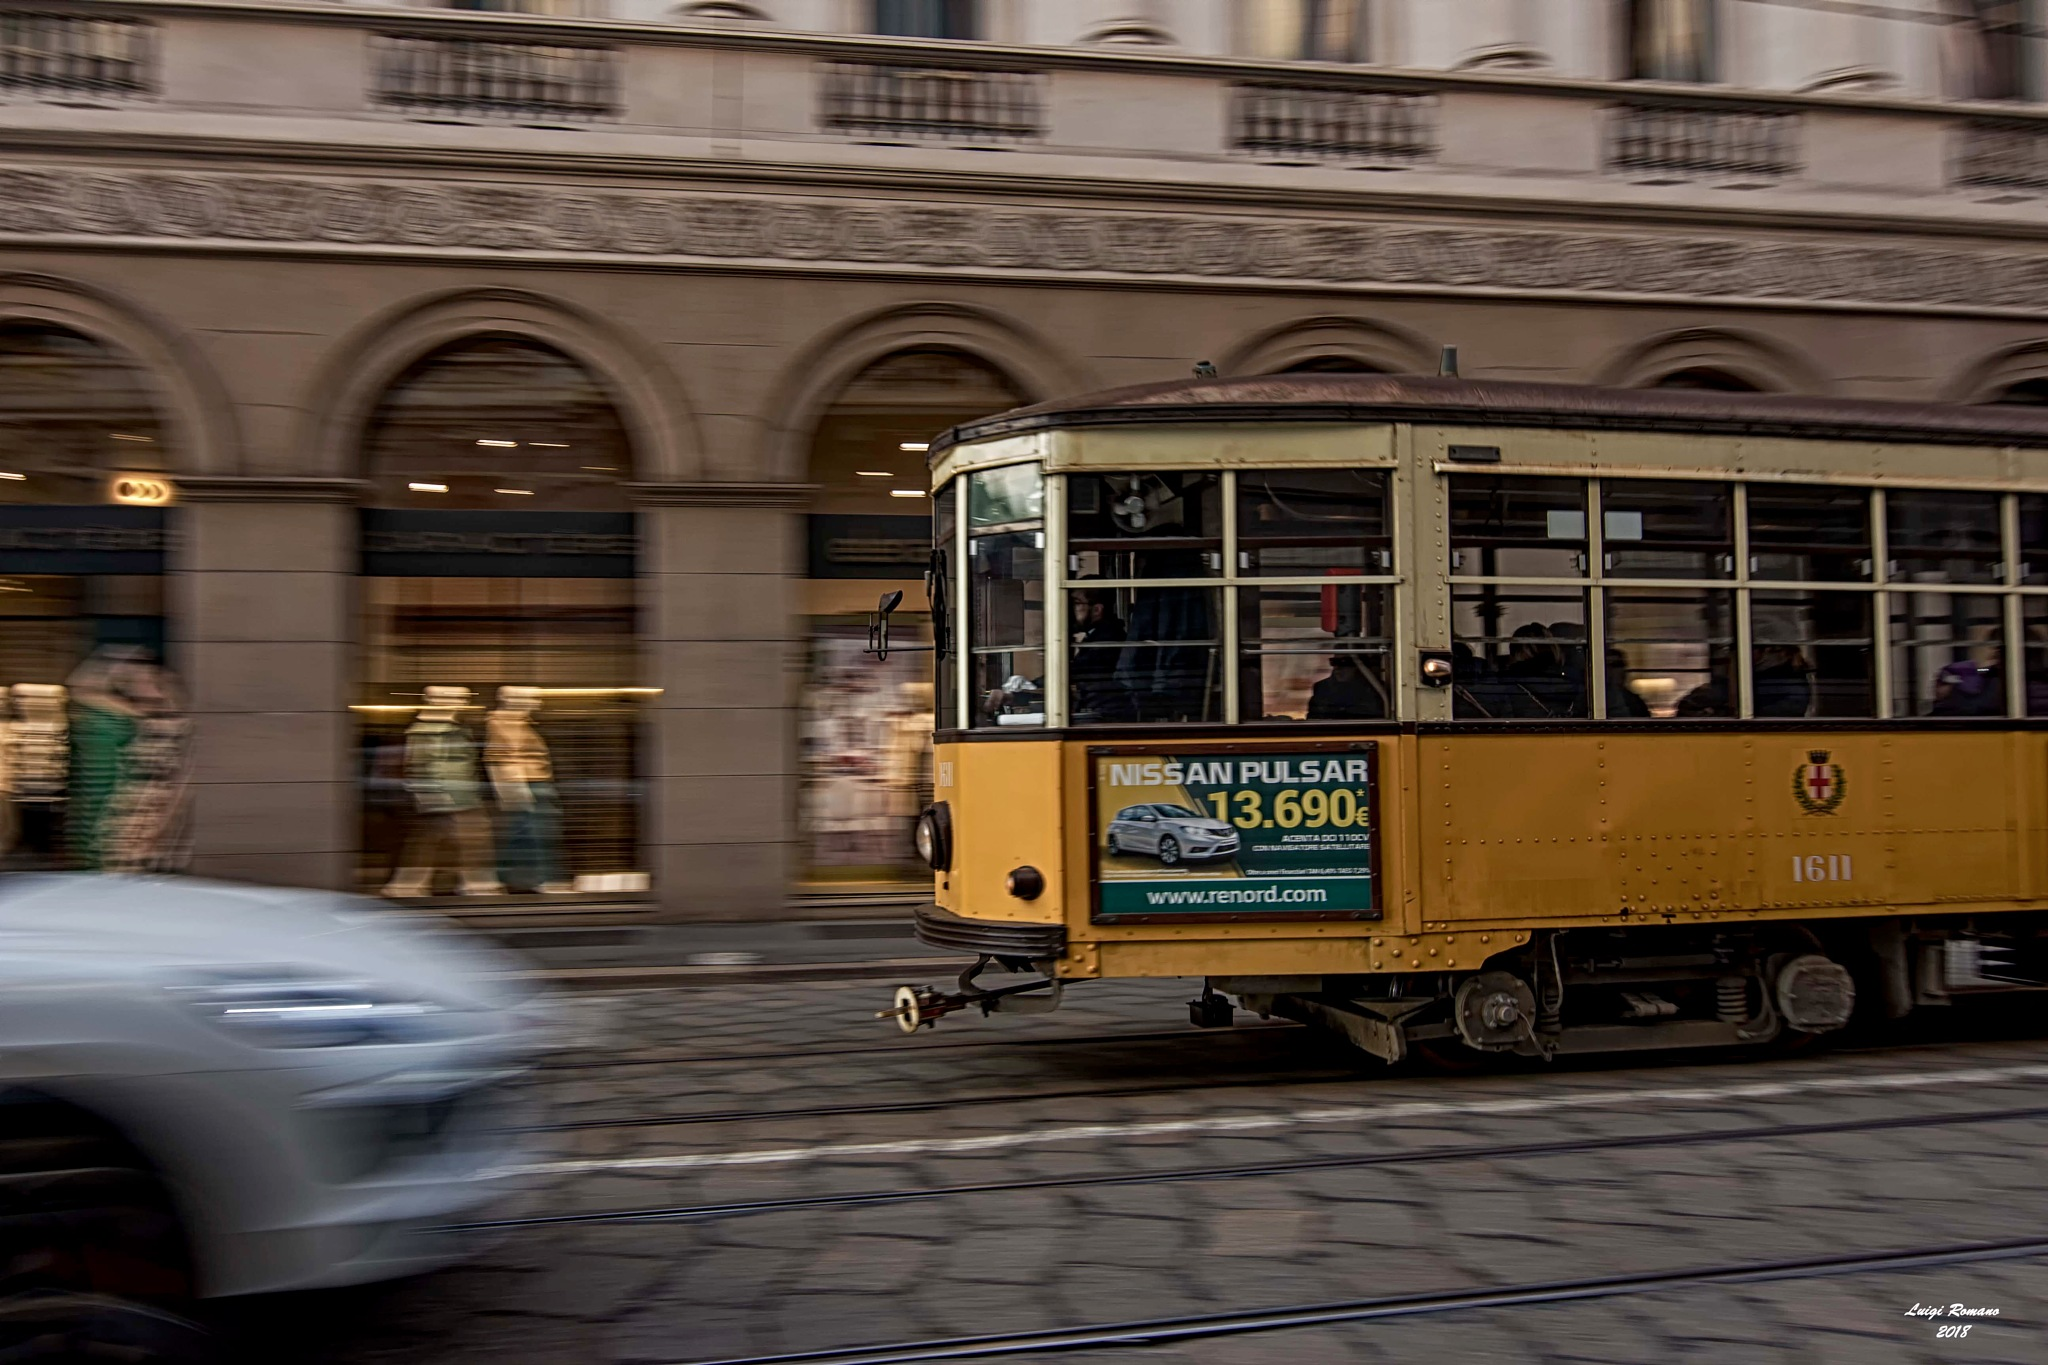 The old tram at full speed by Luigi Romano